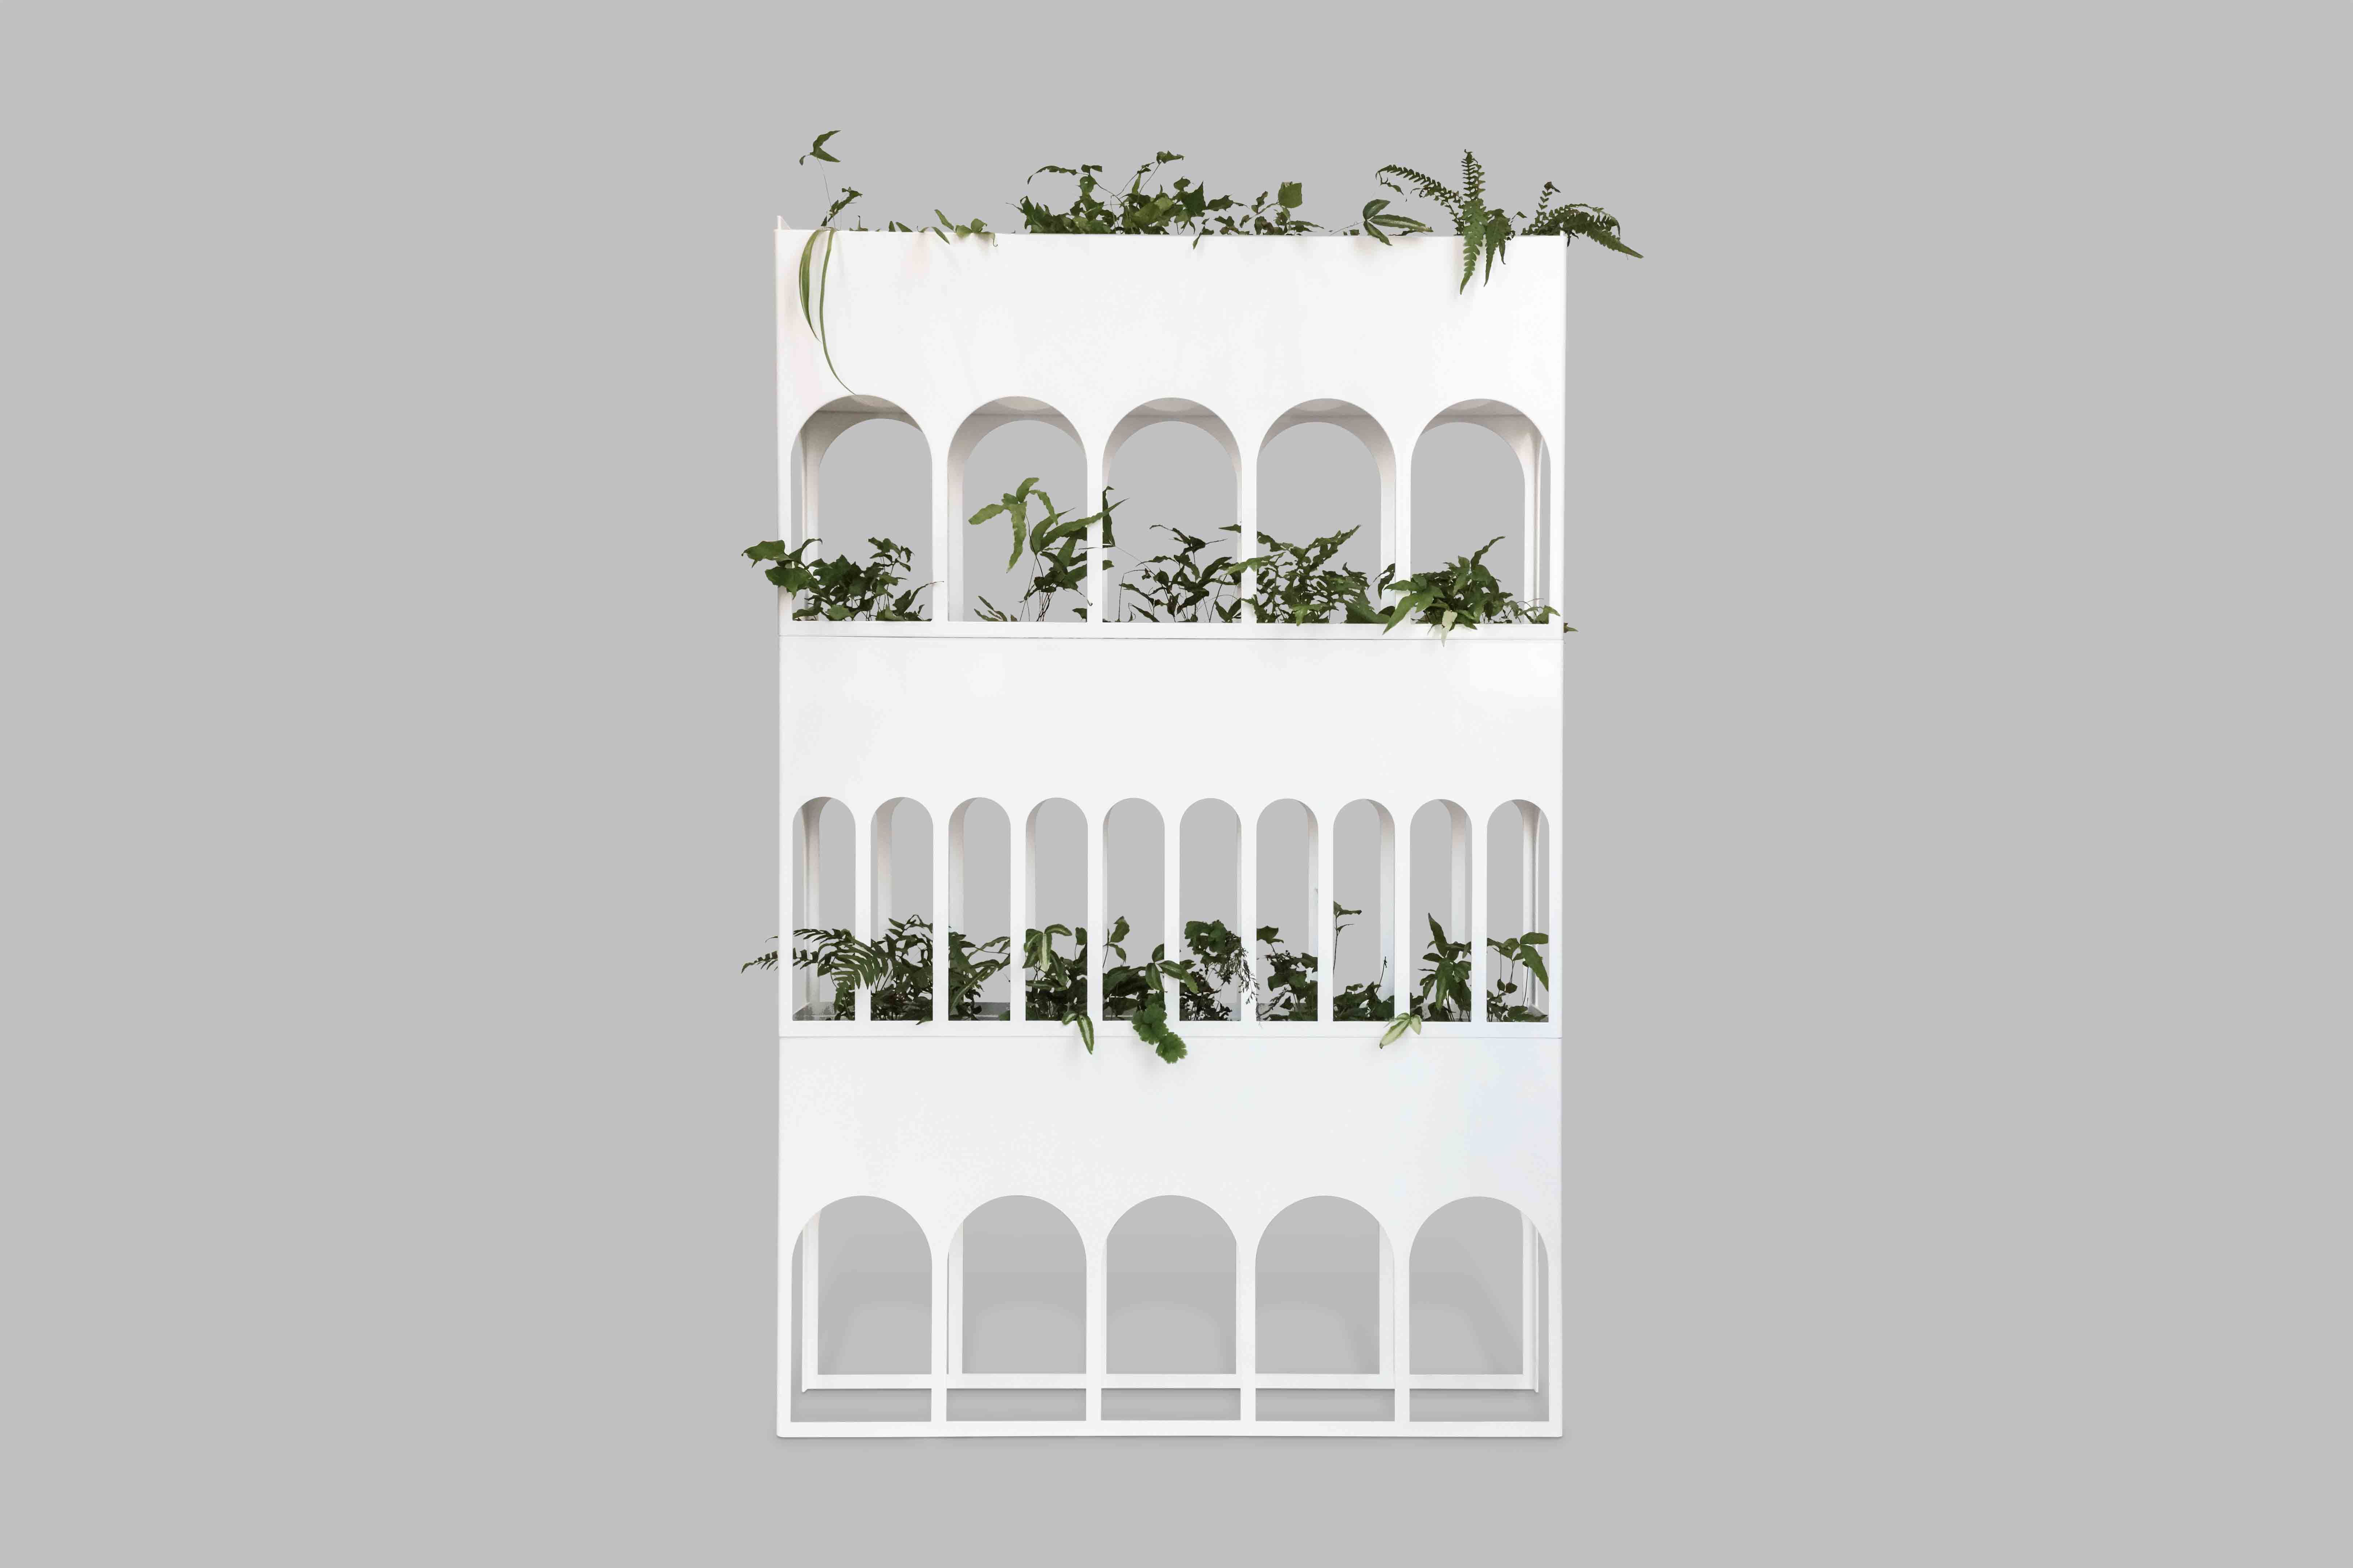 Formacy-Colonnade_Front_Plants_PRINT_red